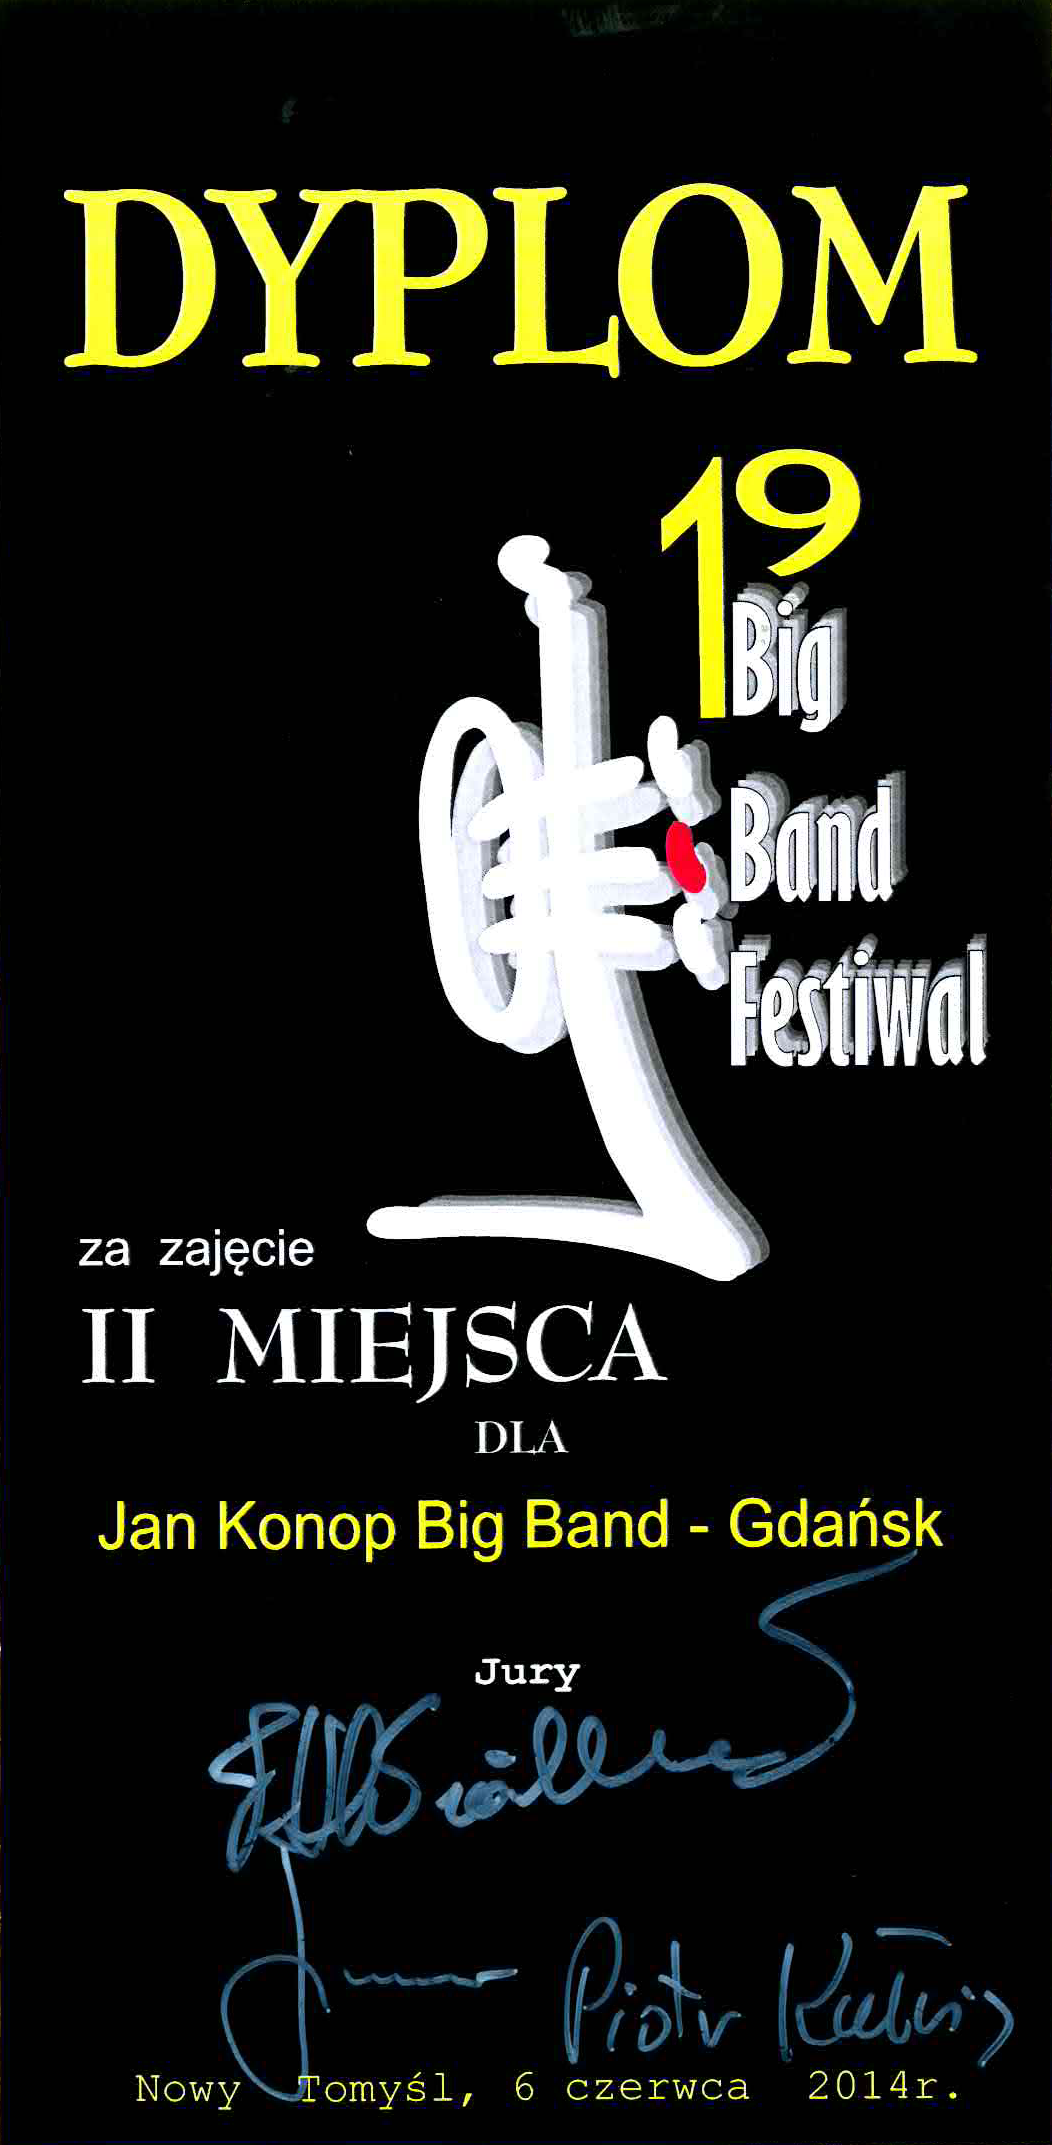 Jan_Konop_Big_Band_Nowy_Tomysl_II_nagroda